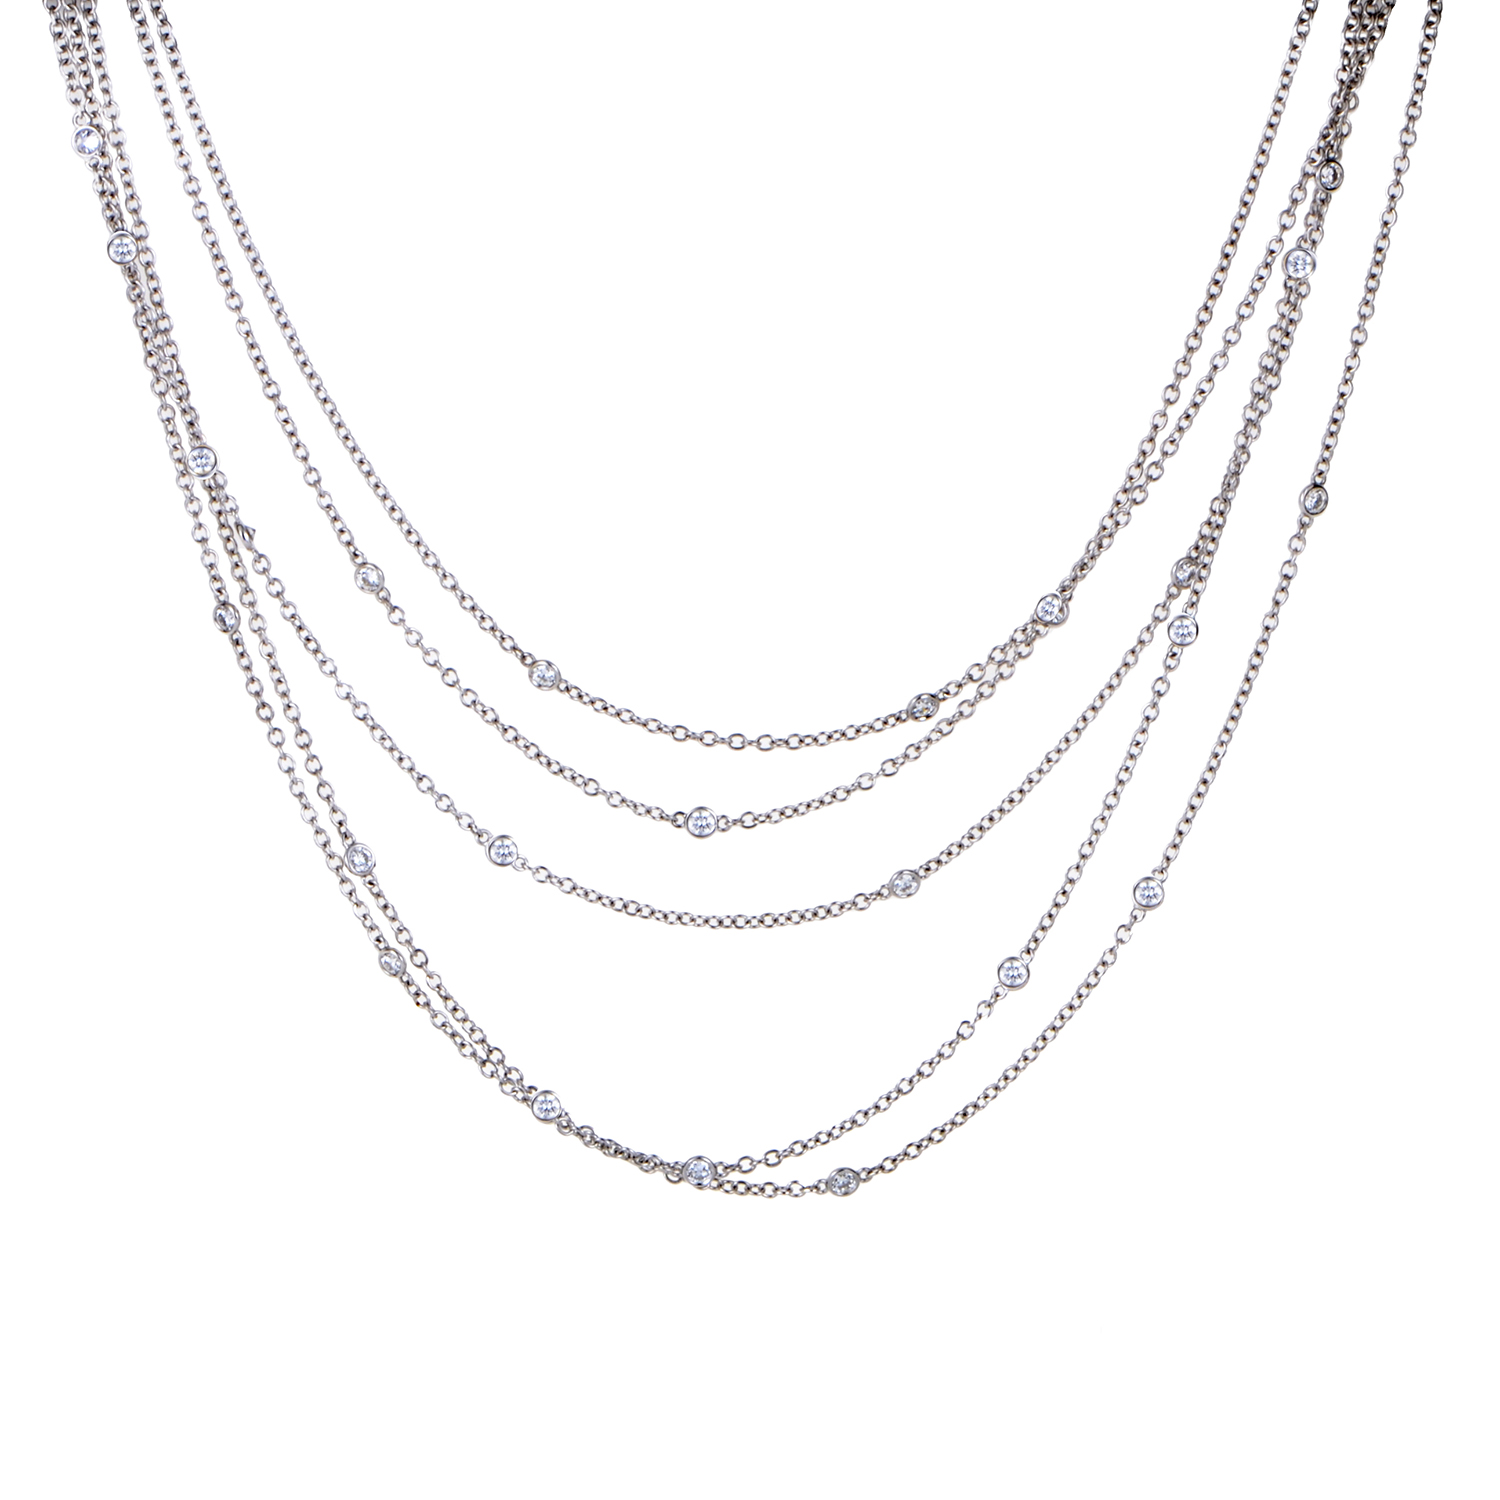 Women's 18K White Gold & Diamond Multi-Strand Necklace